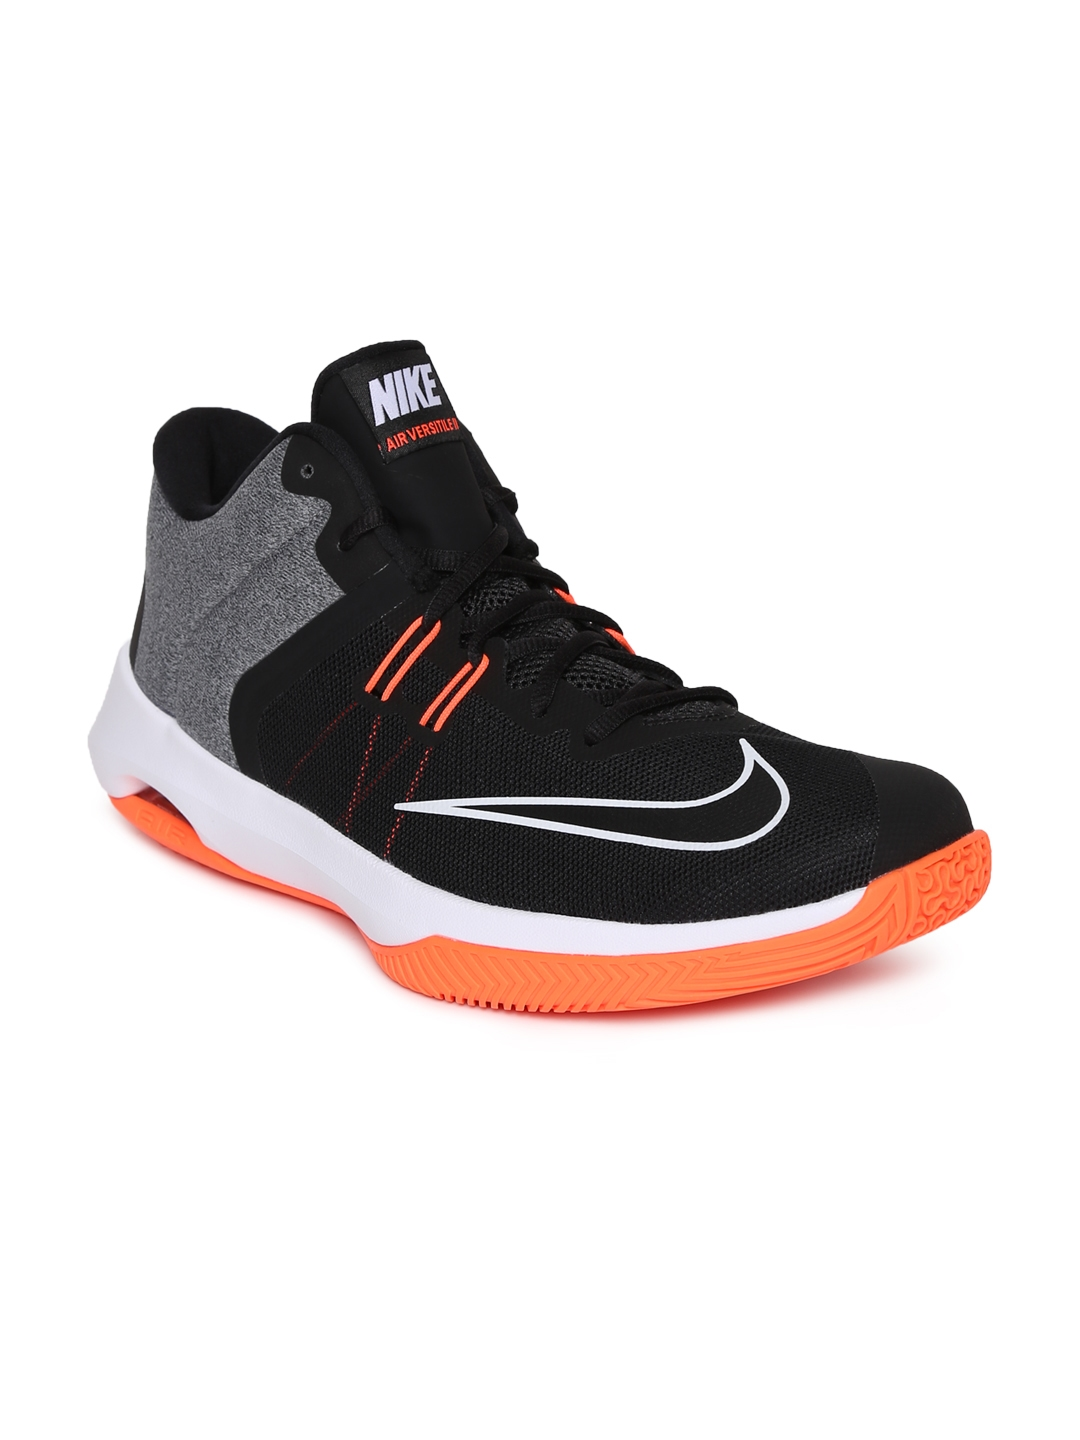 Buy Nike Men Black   Grey AIR VERSITILE II Basketball Shoes - Sports ... 4552c8e0e